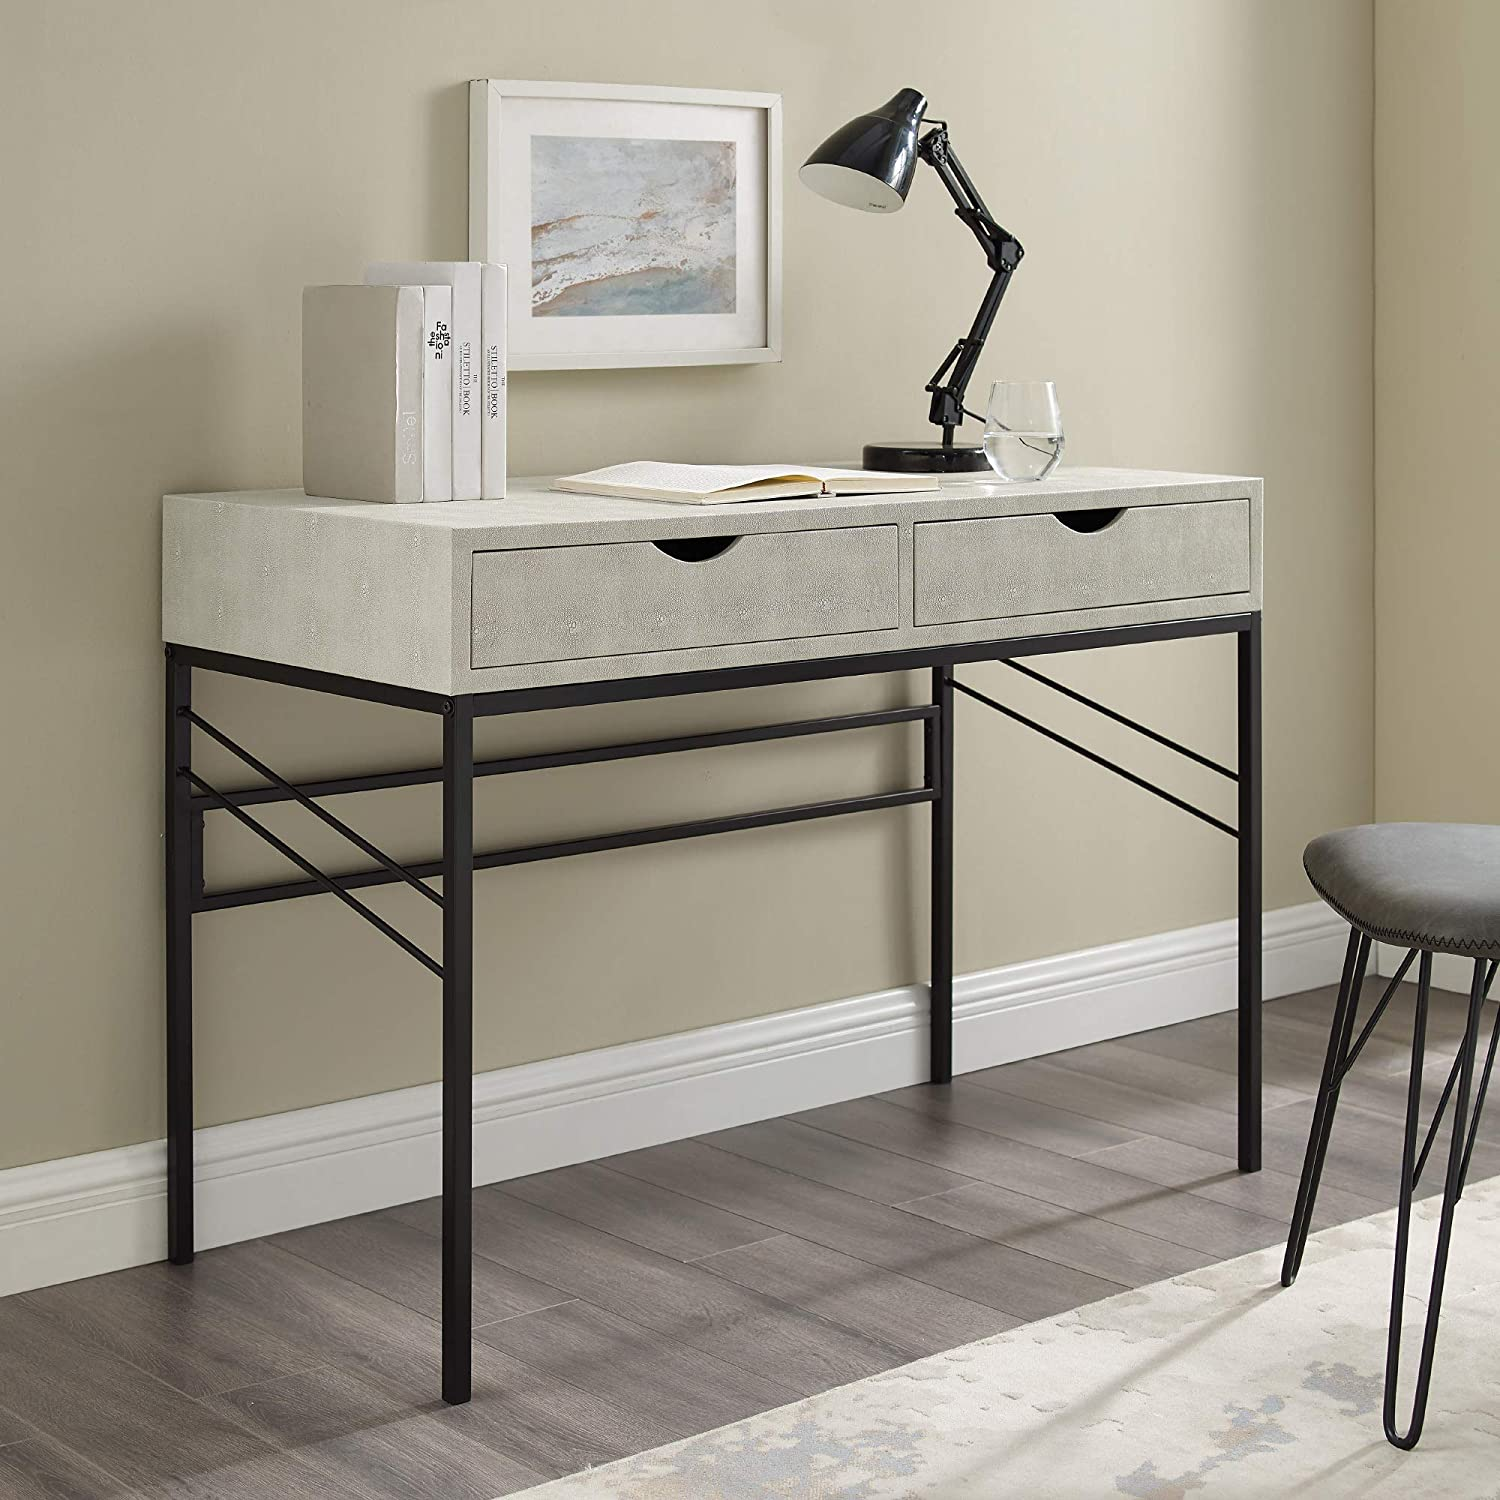 Walker Edison 2 Drawer Modern Selling rankings Popular brand in the world Wood Writing and Computer De Metal